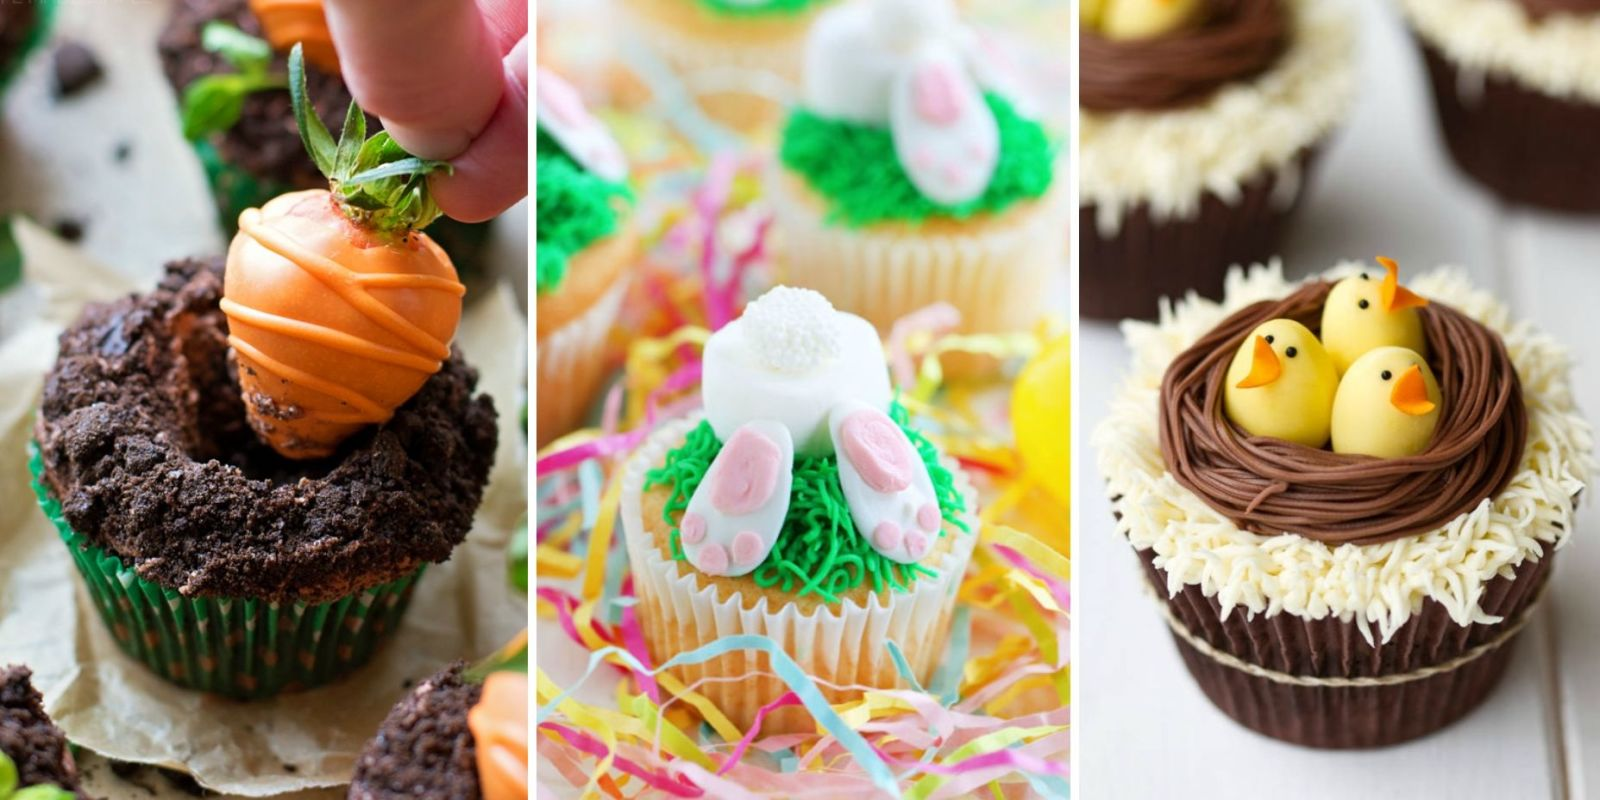 12 cute easter cupcake ideas decorating recipes for for Creative cupcake recipes and decorating ideas